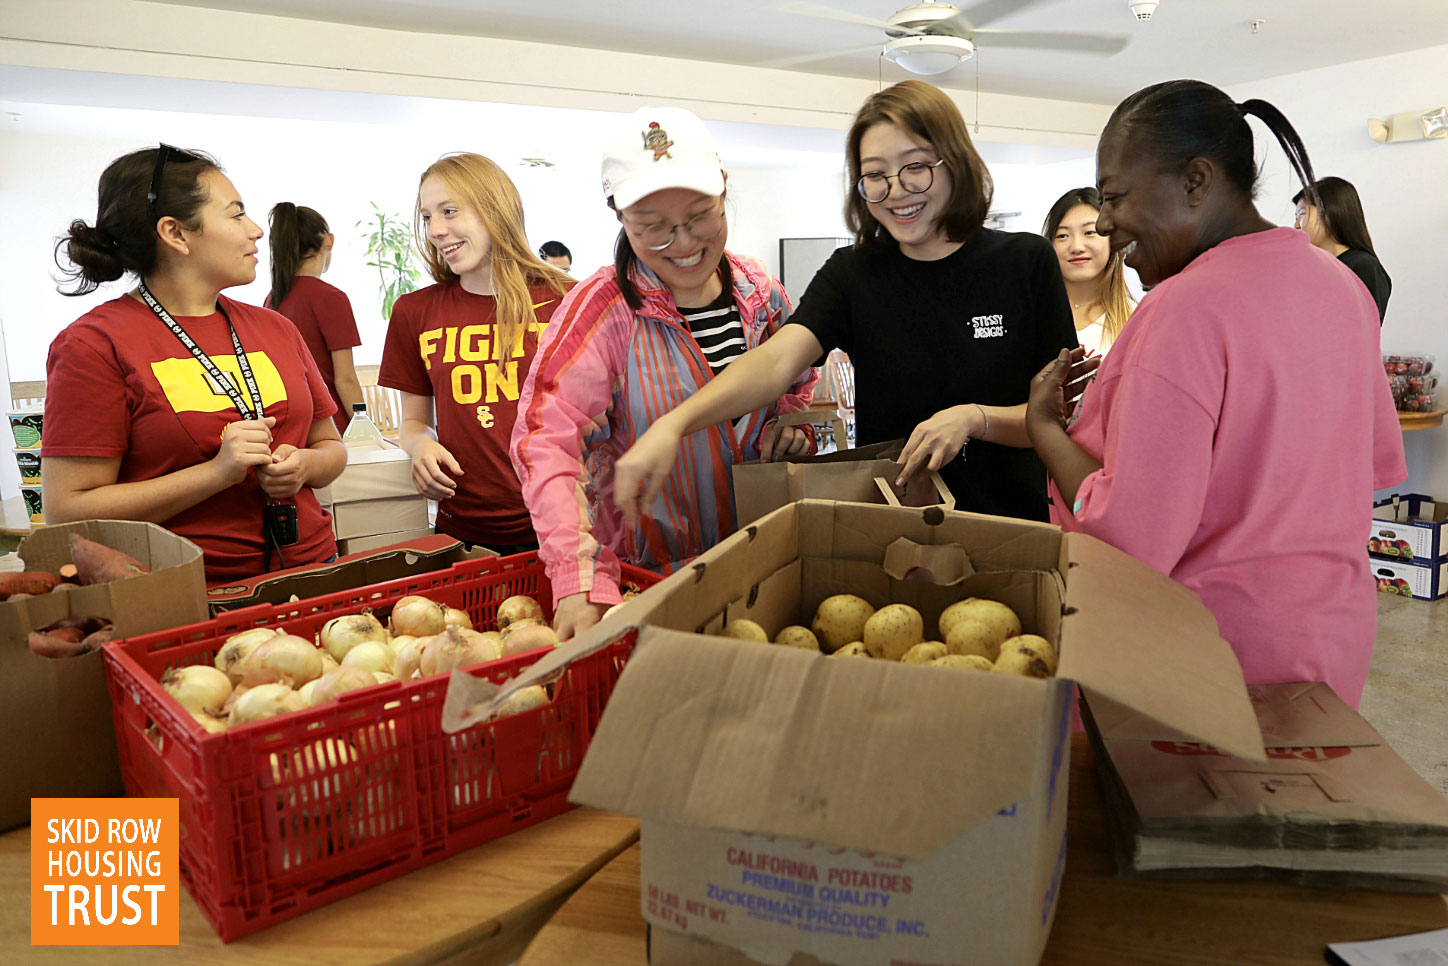 Student volunteers from USC set up a mini farmer's market in the community kitchen at the Abby Apartments. Residents were provided grocery bags and fresh produce for free.